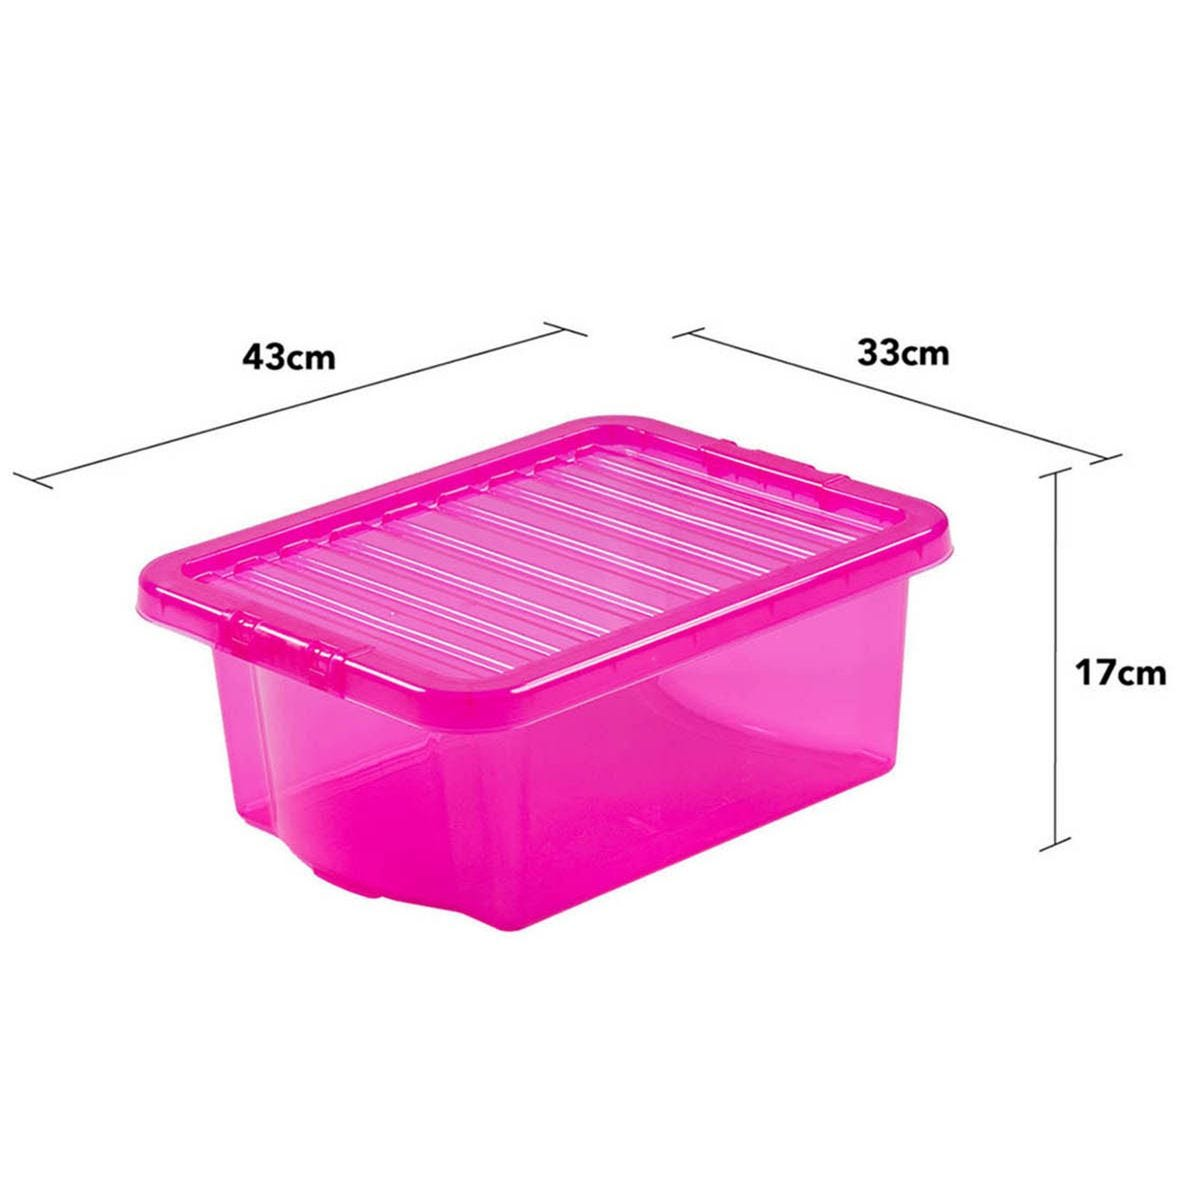 Wham Crystal Pink Storage Box with Lid 16L - Set of 6